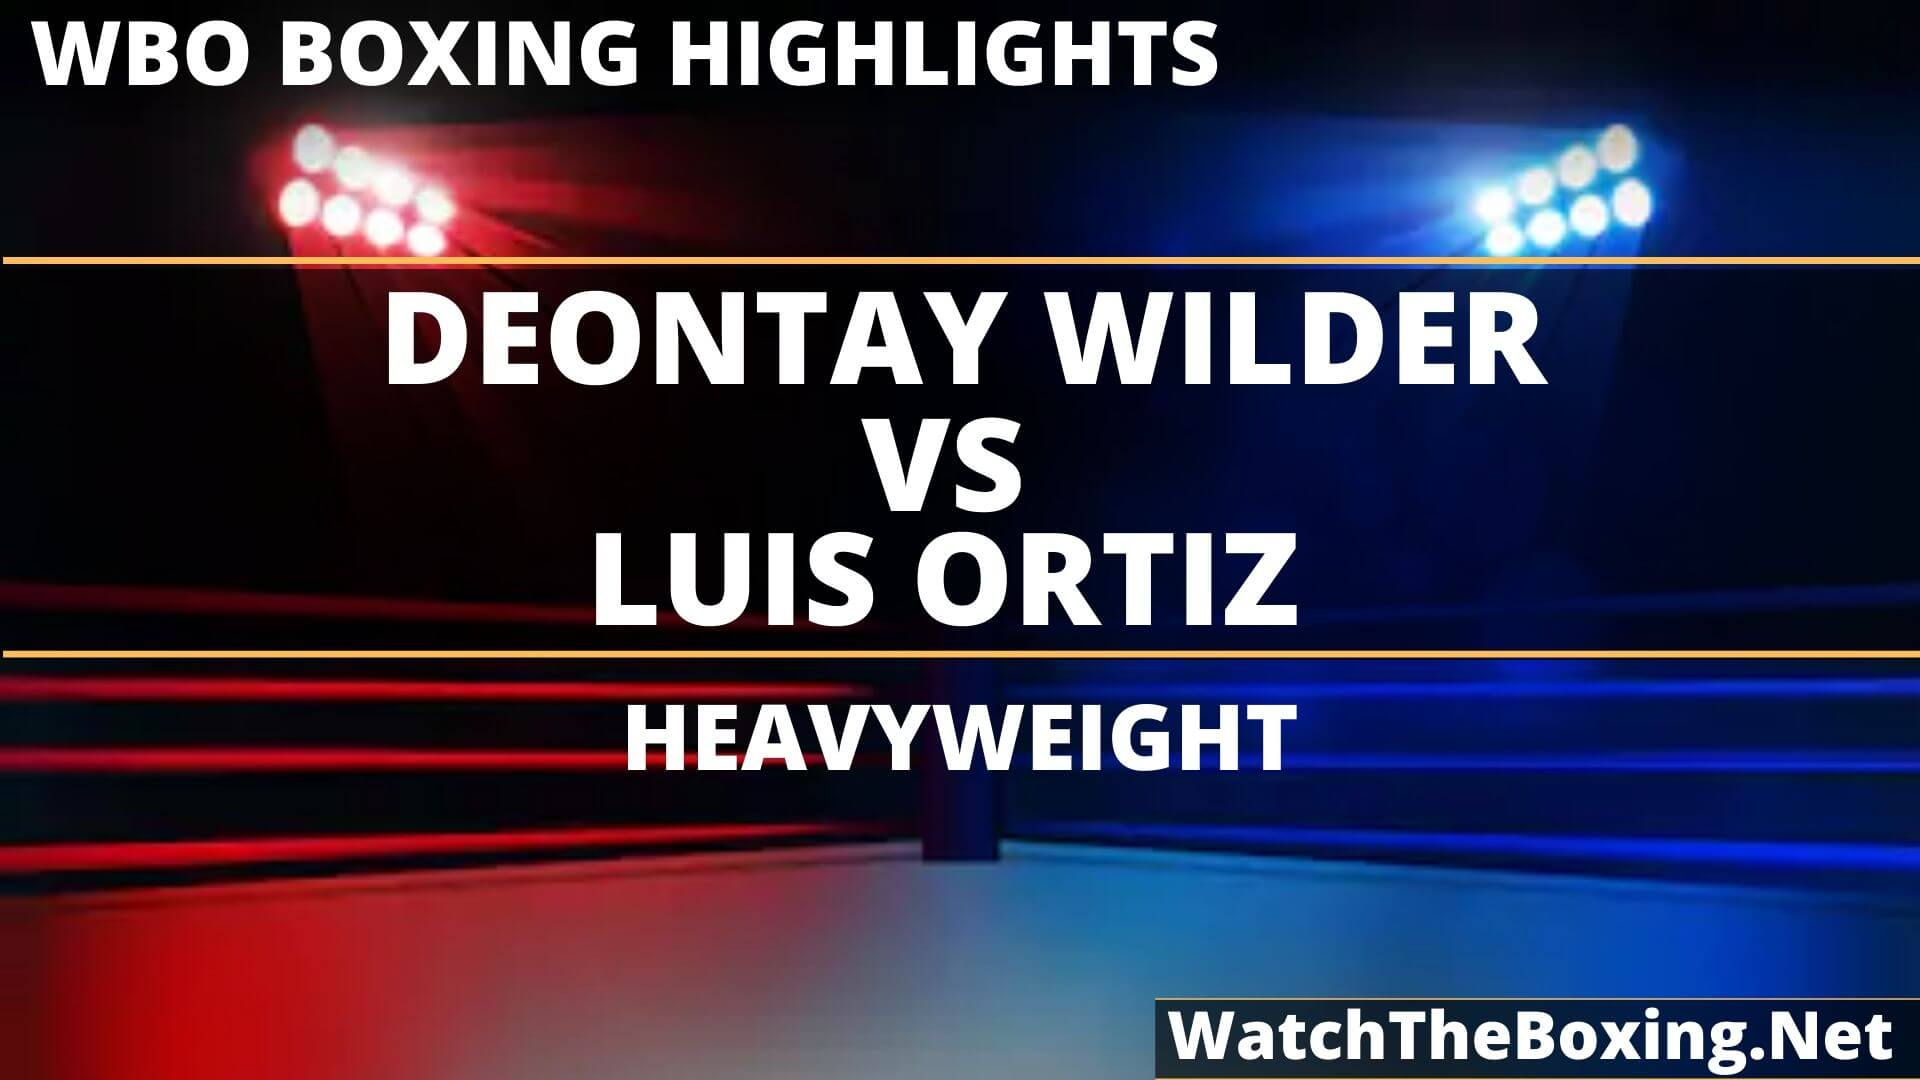 Deontay Wilder Vs Luis Ortiz Highlights 2019